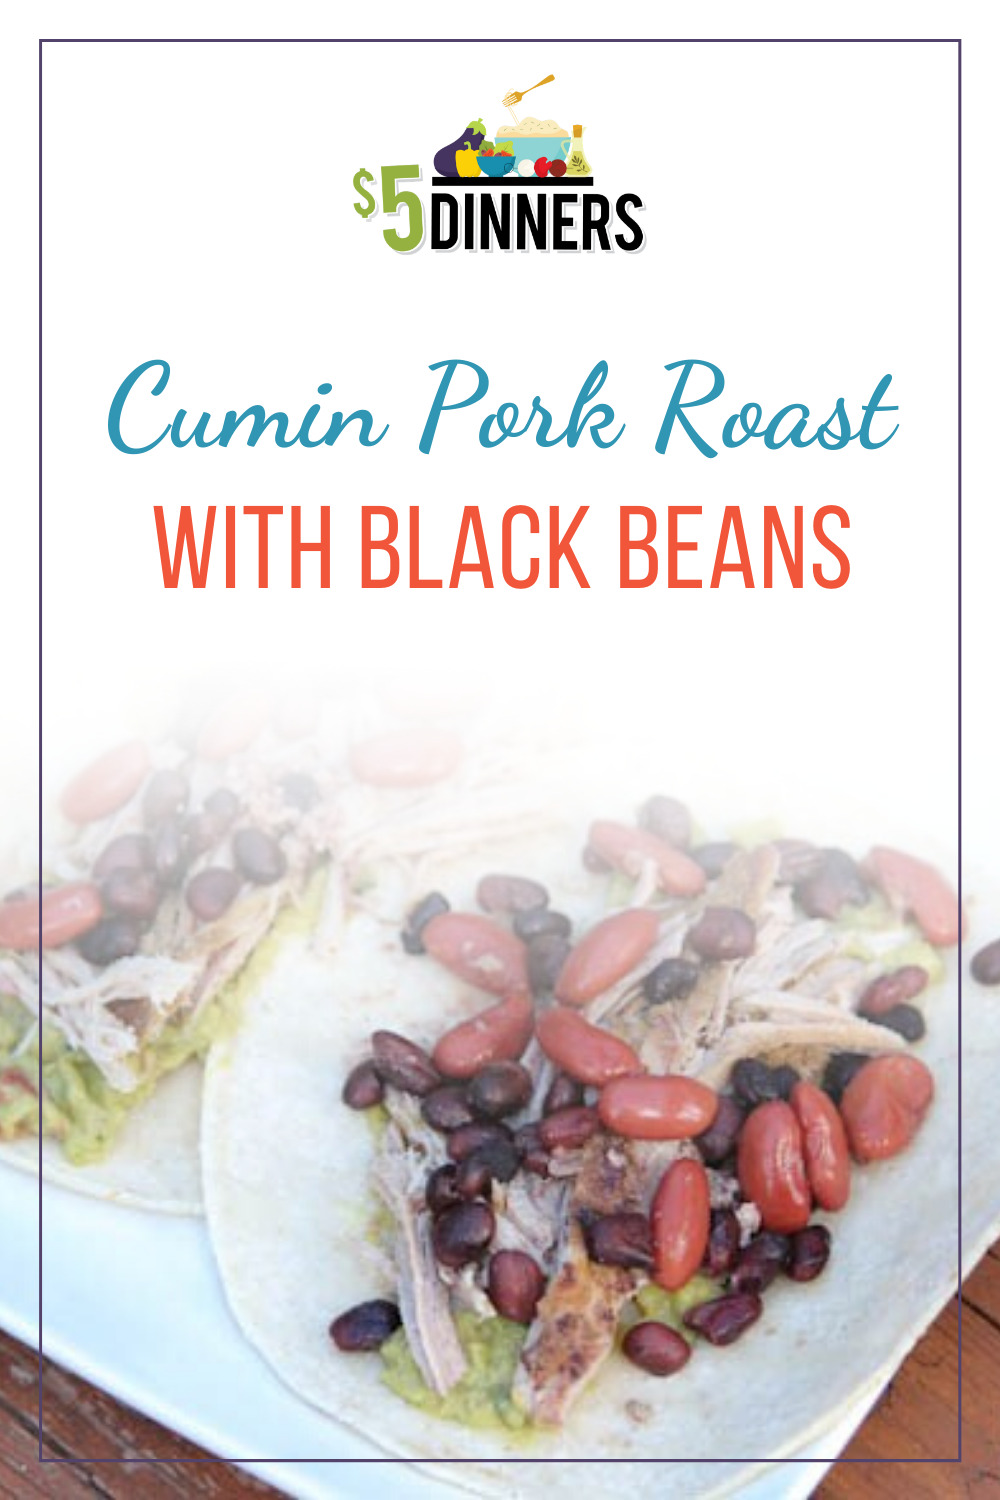 cumin pork roast with black beans